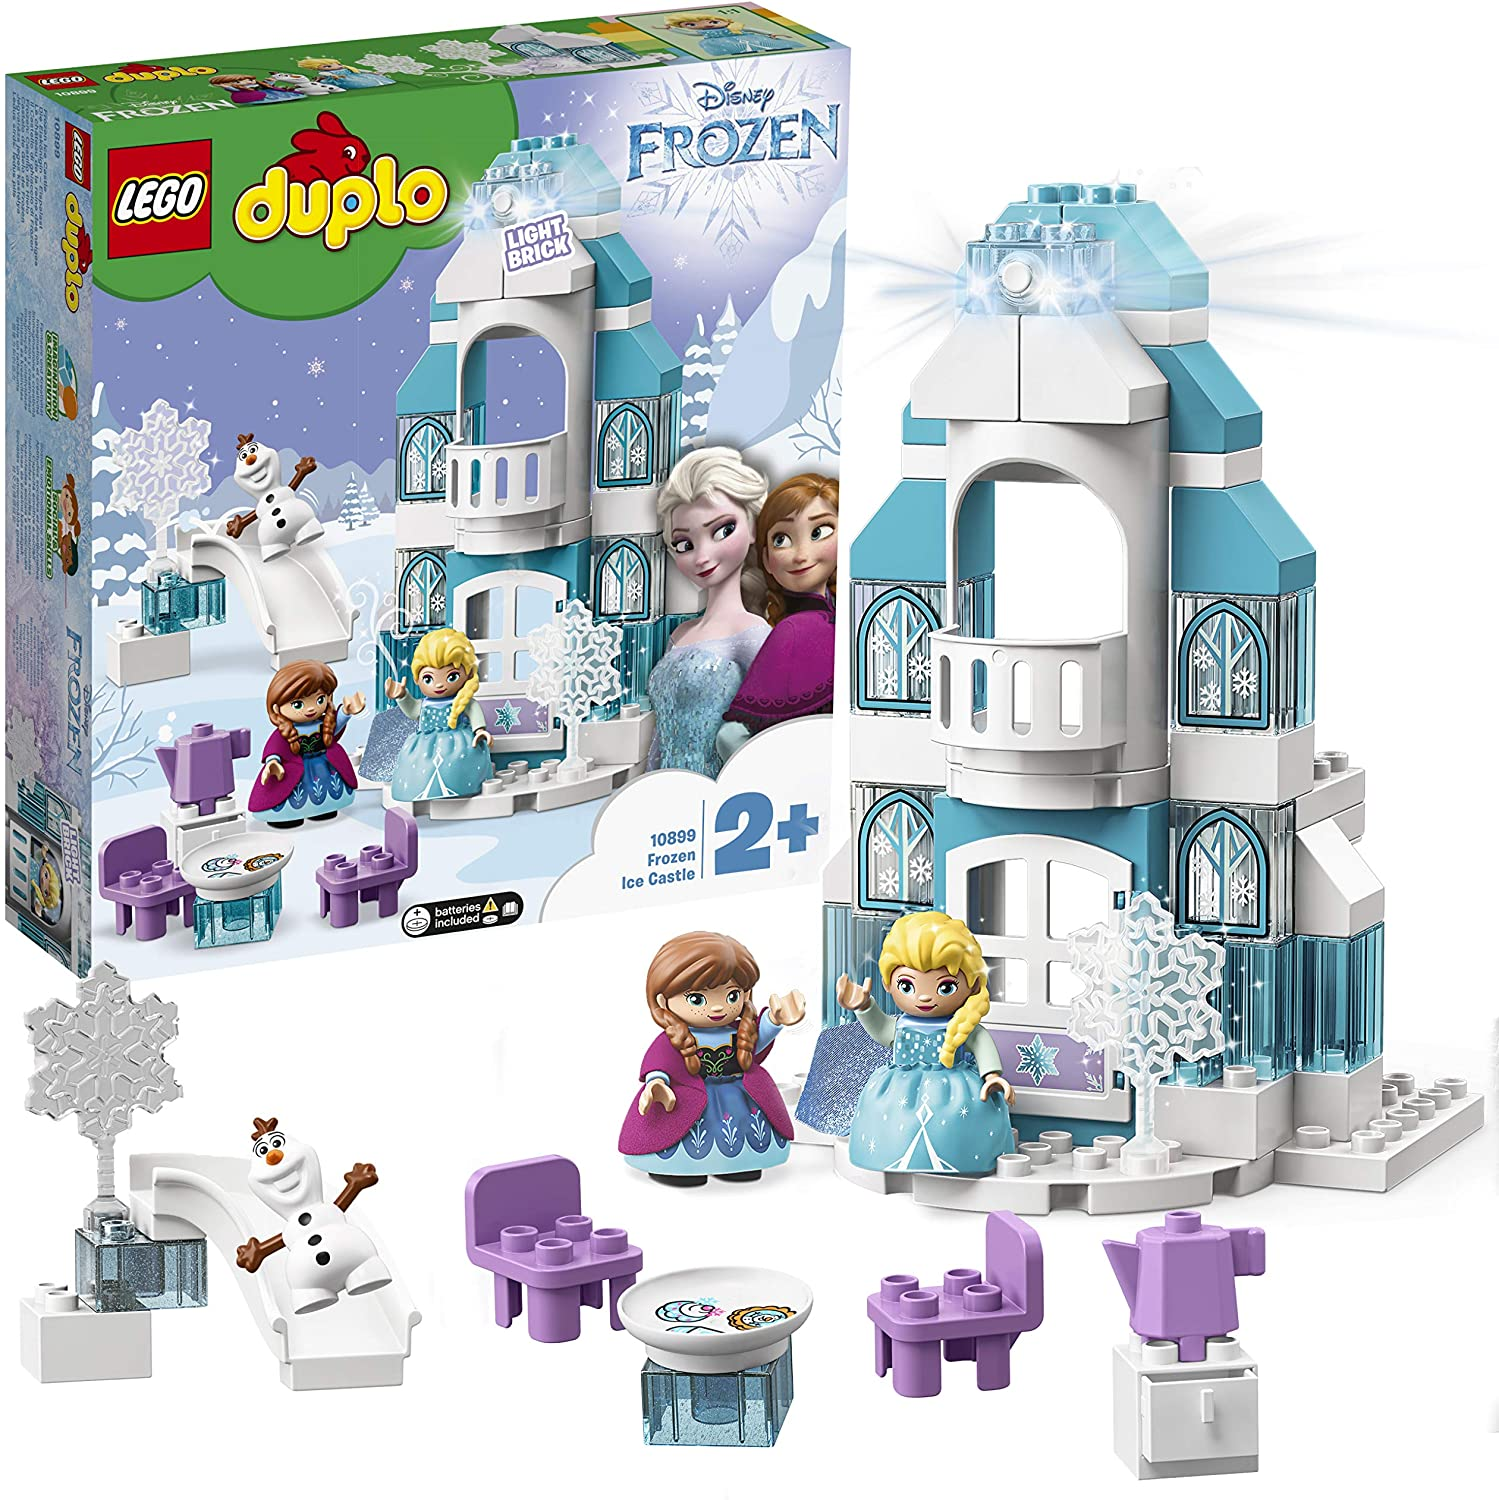 Duplo Disney Frozen Ice Castle Lego